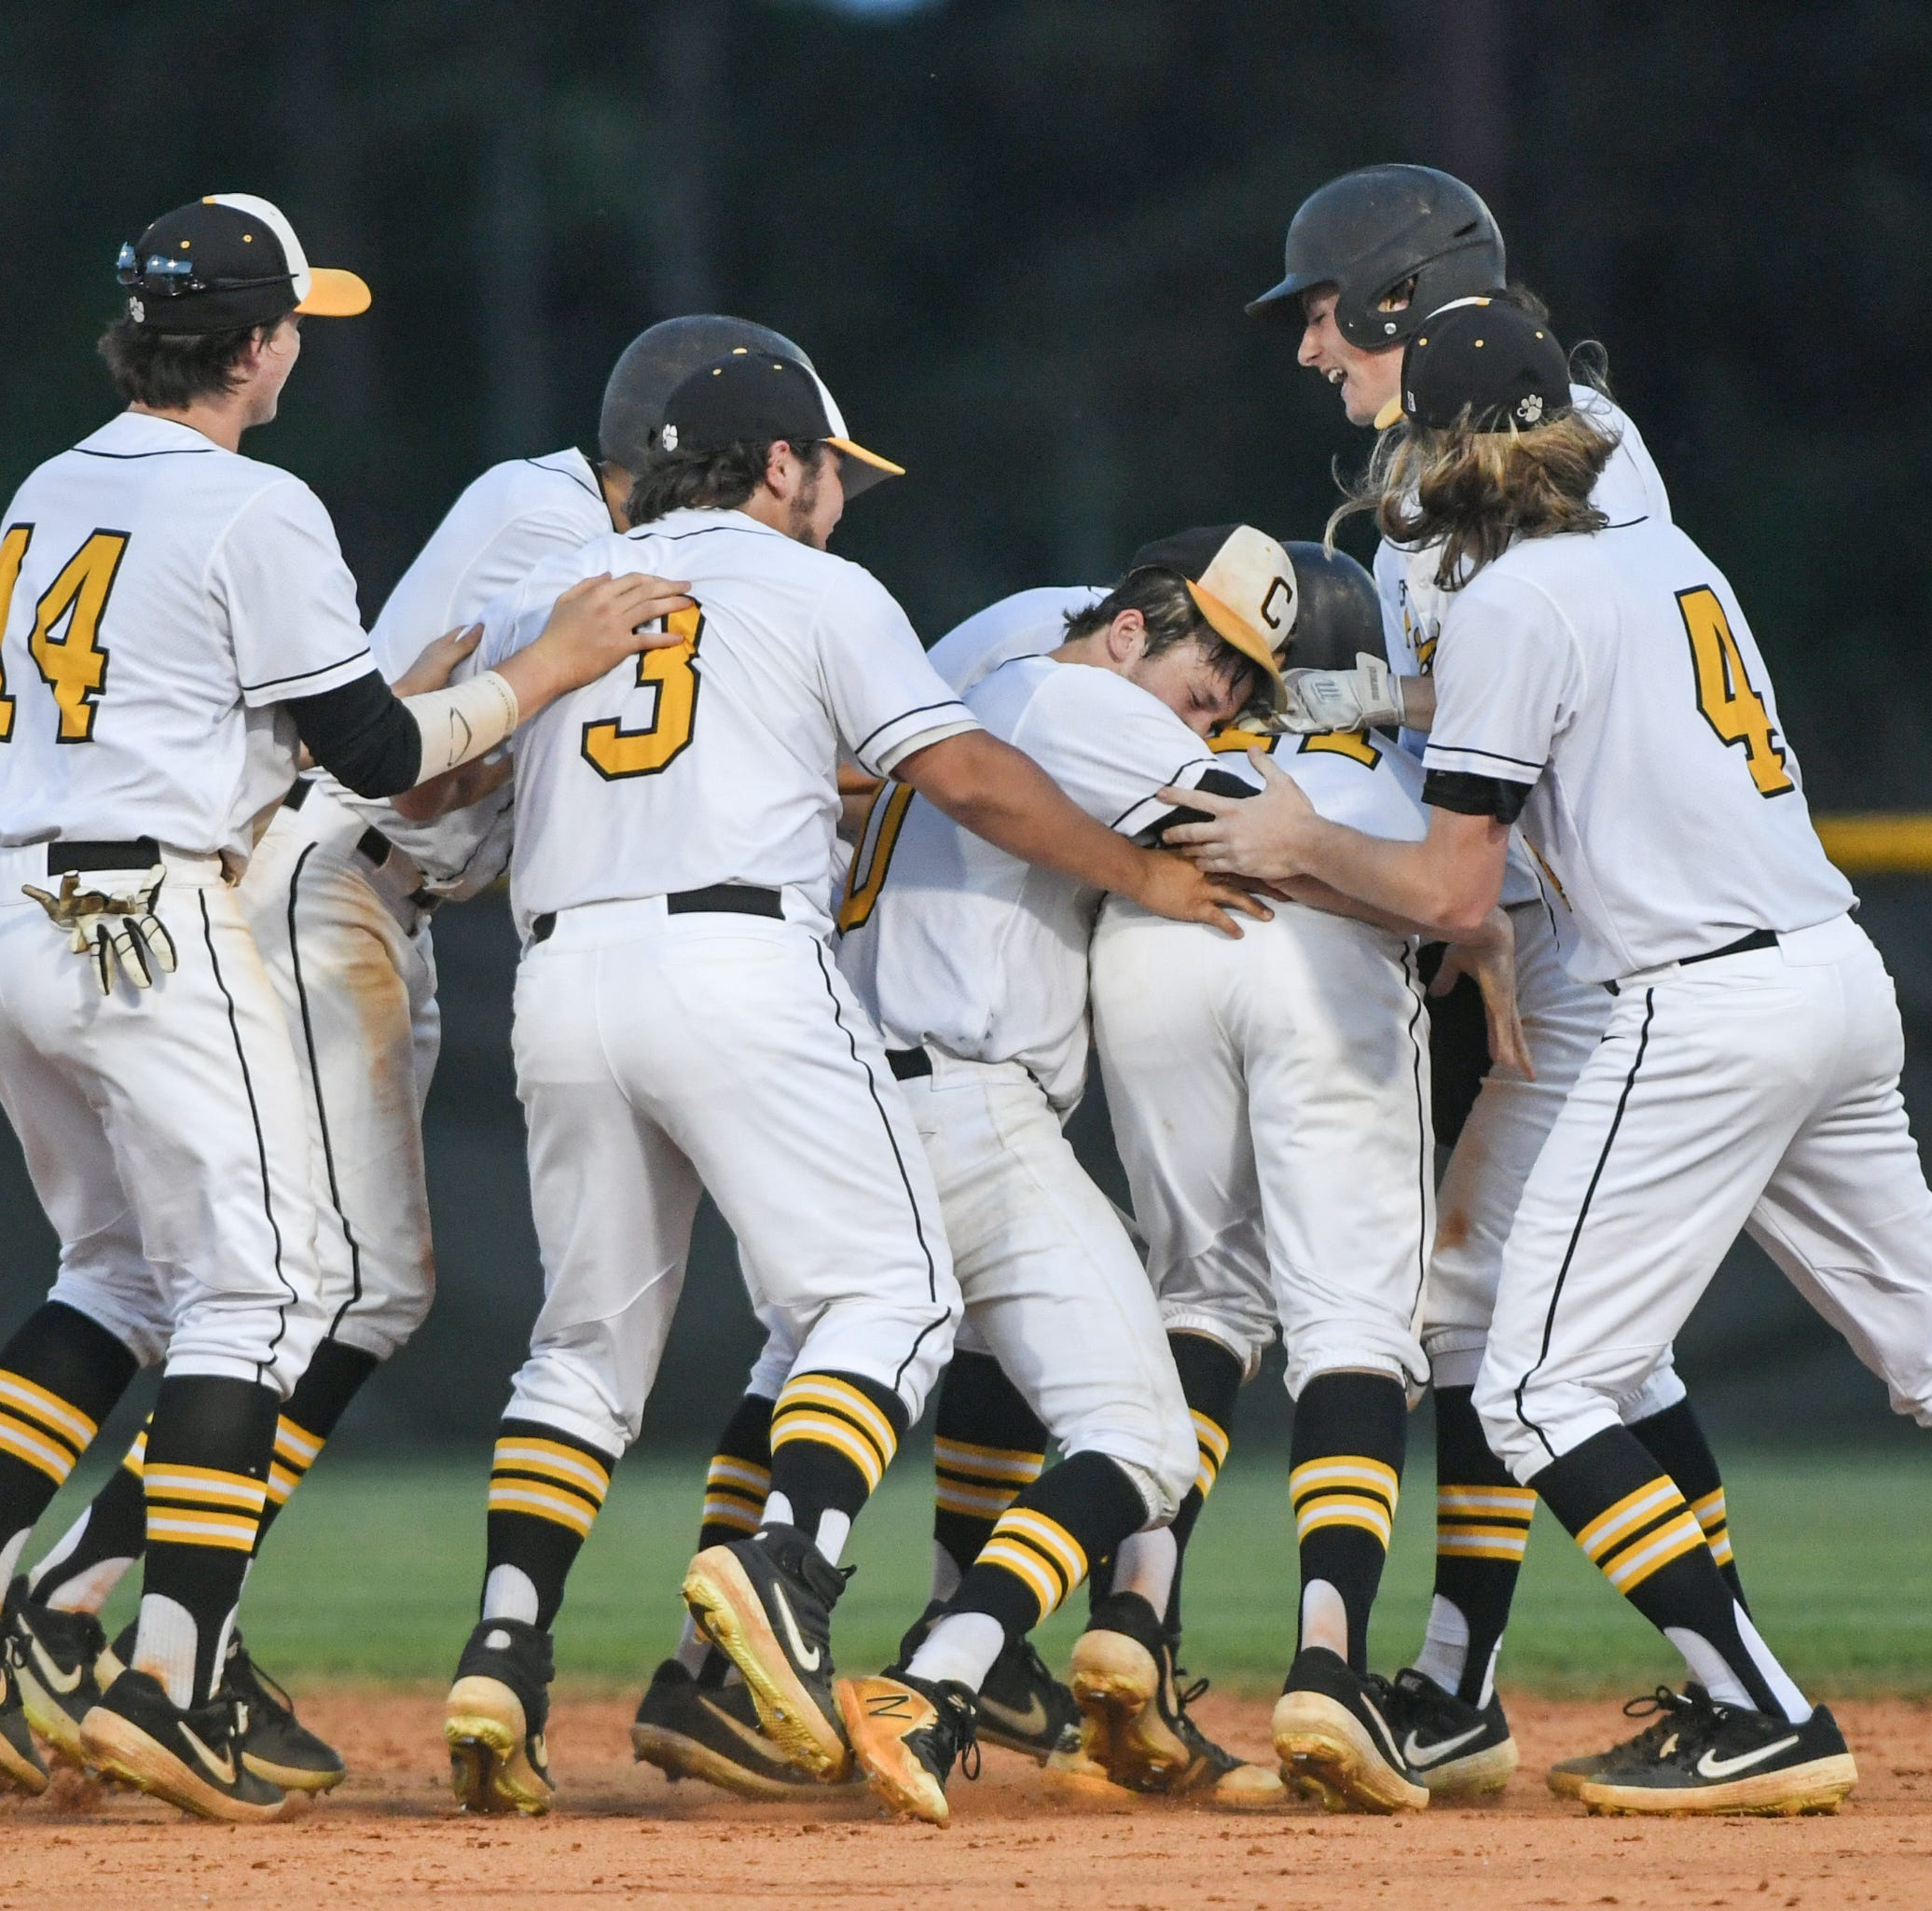 Crescent High baseball, softball celebrate a rare sweept of region titles